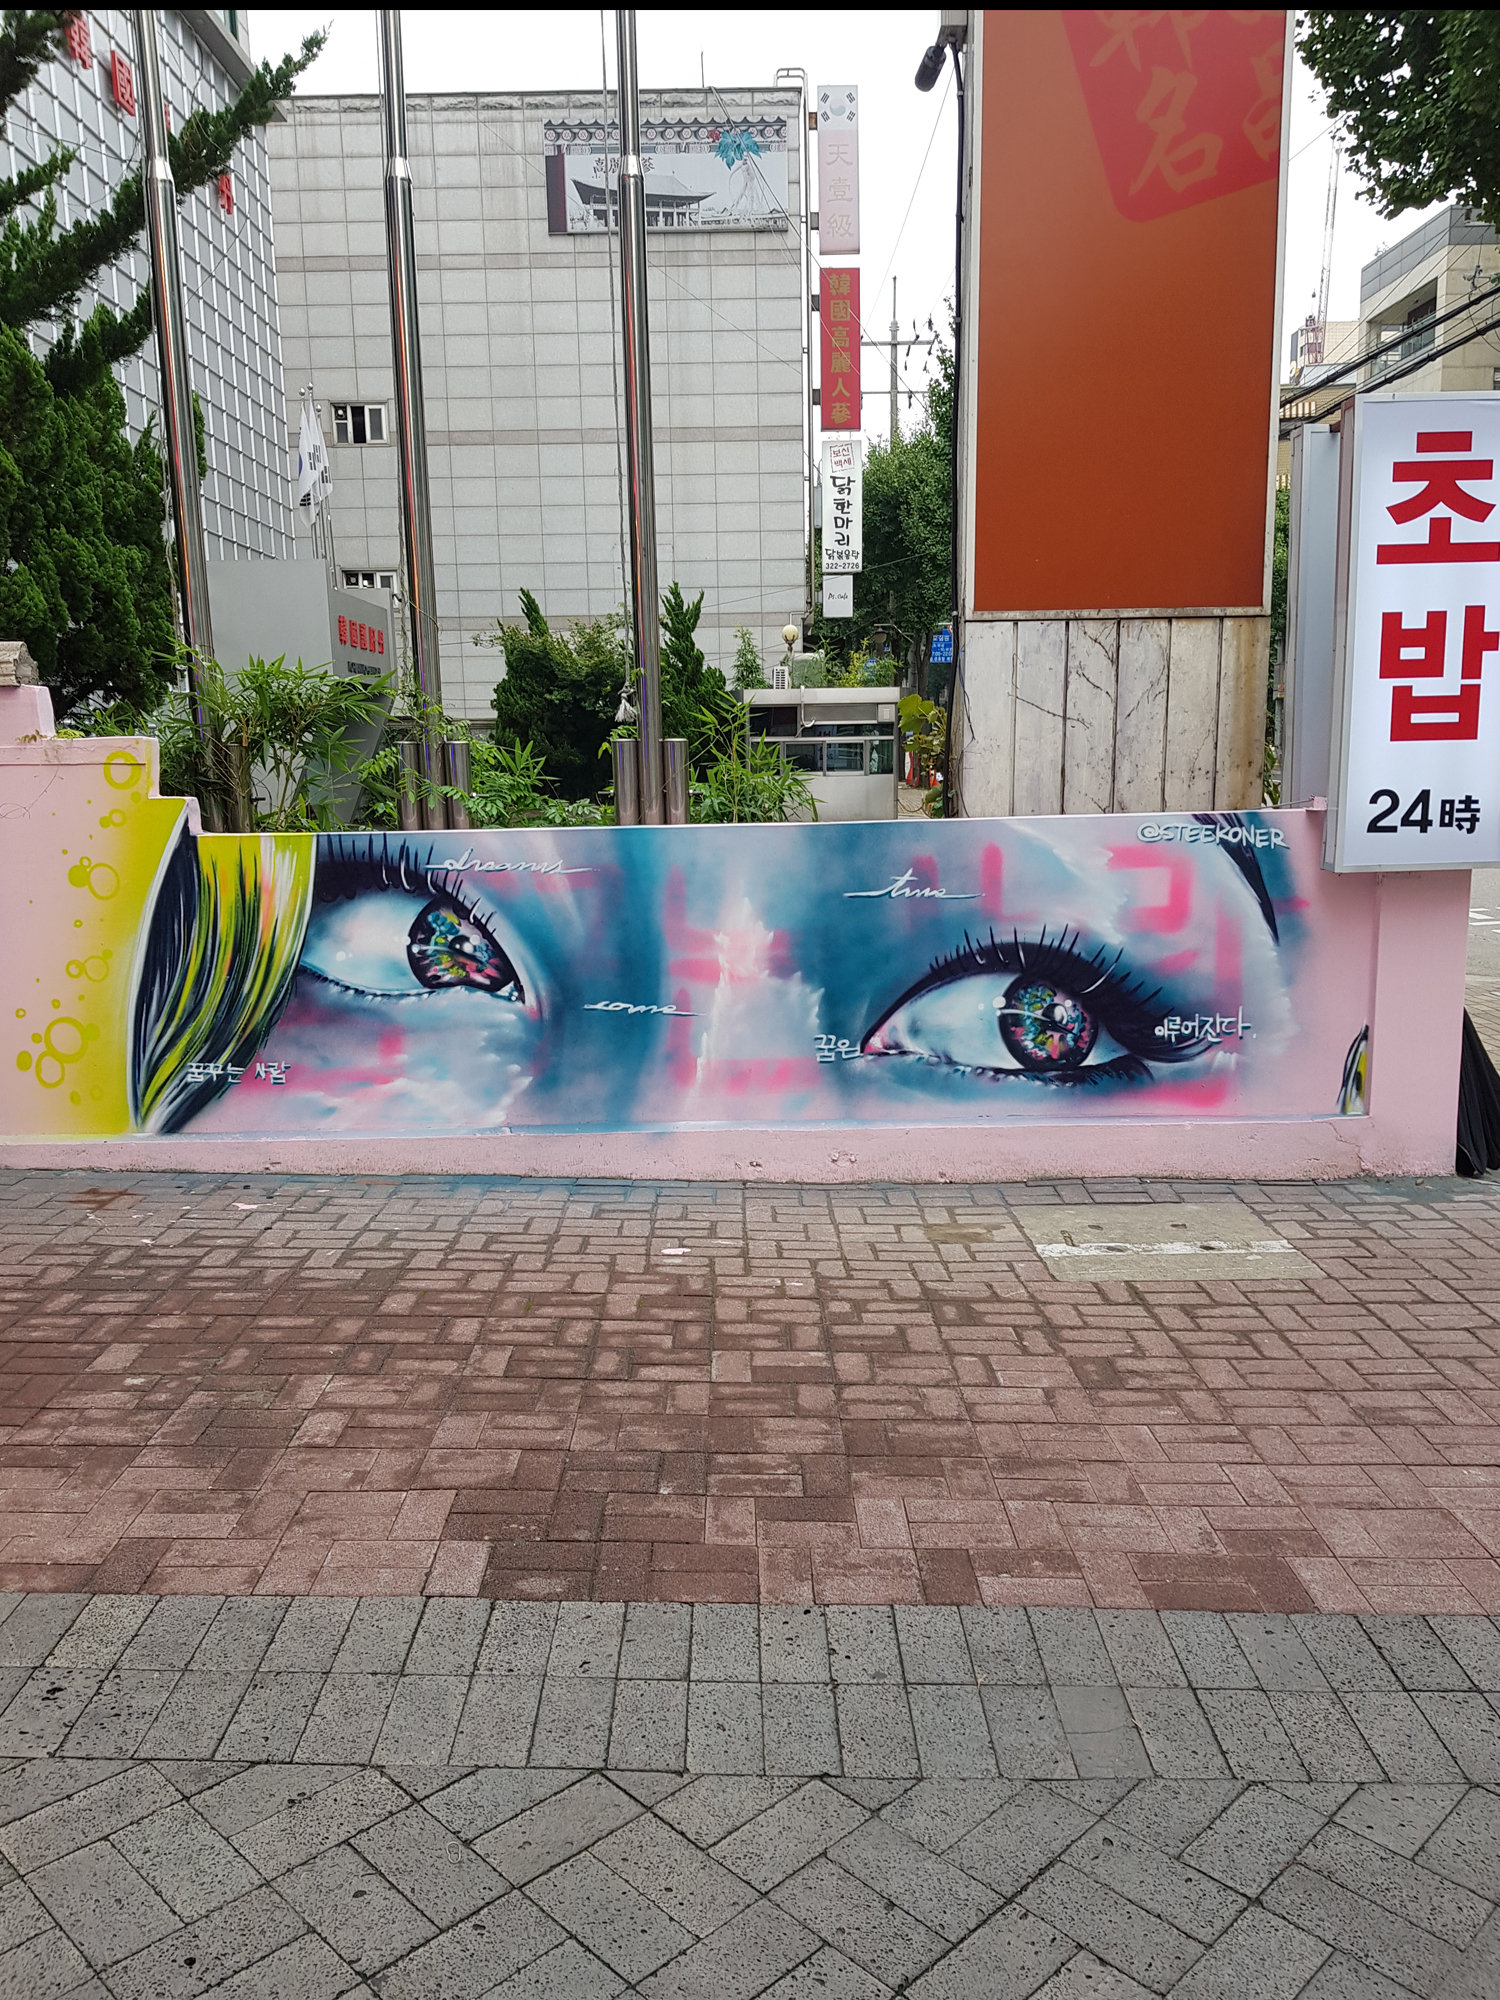 STEEK - SOUTH KOREA 2018